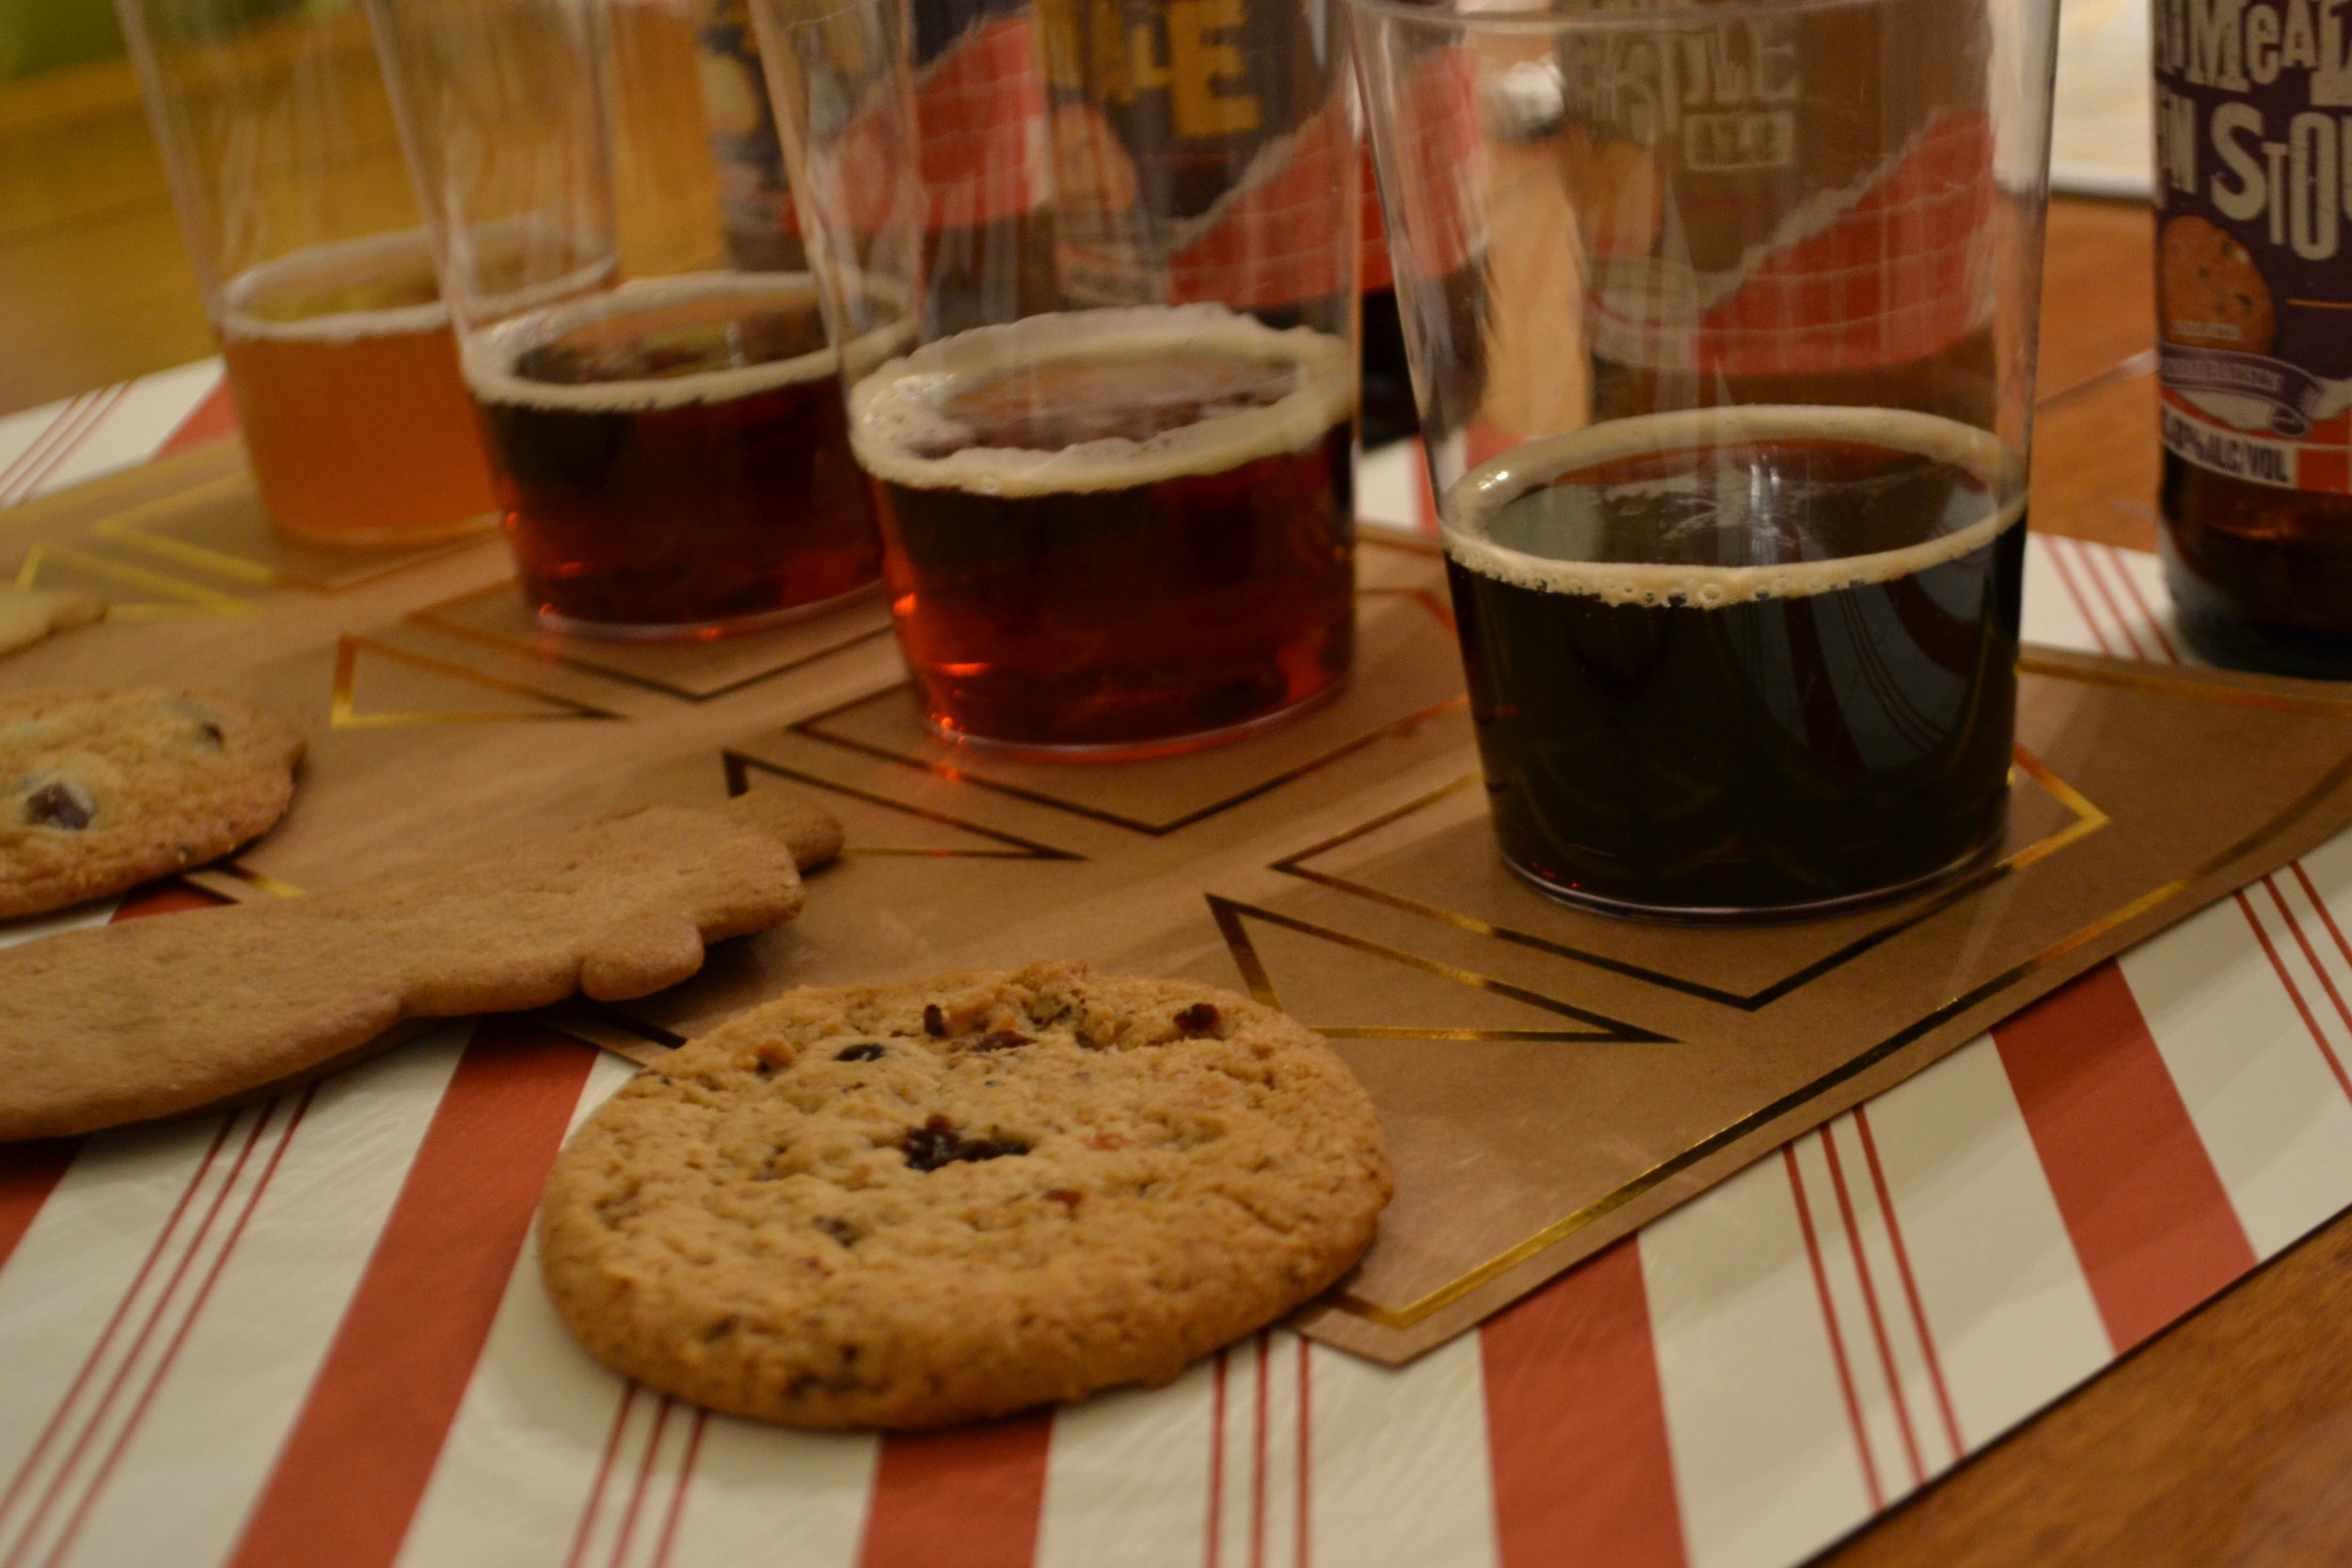 Cookies & Beer at an angle